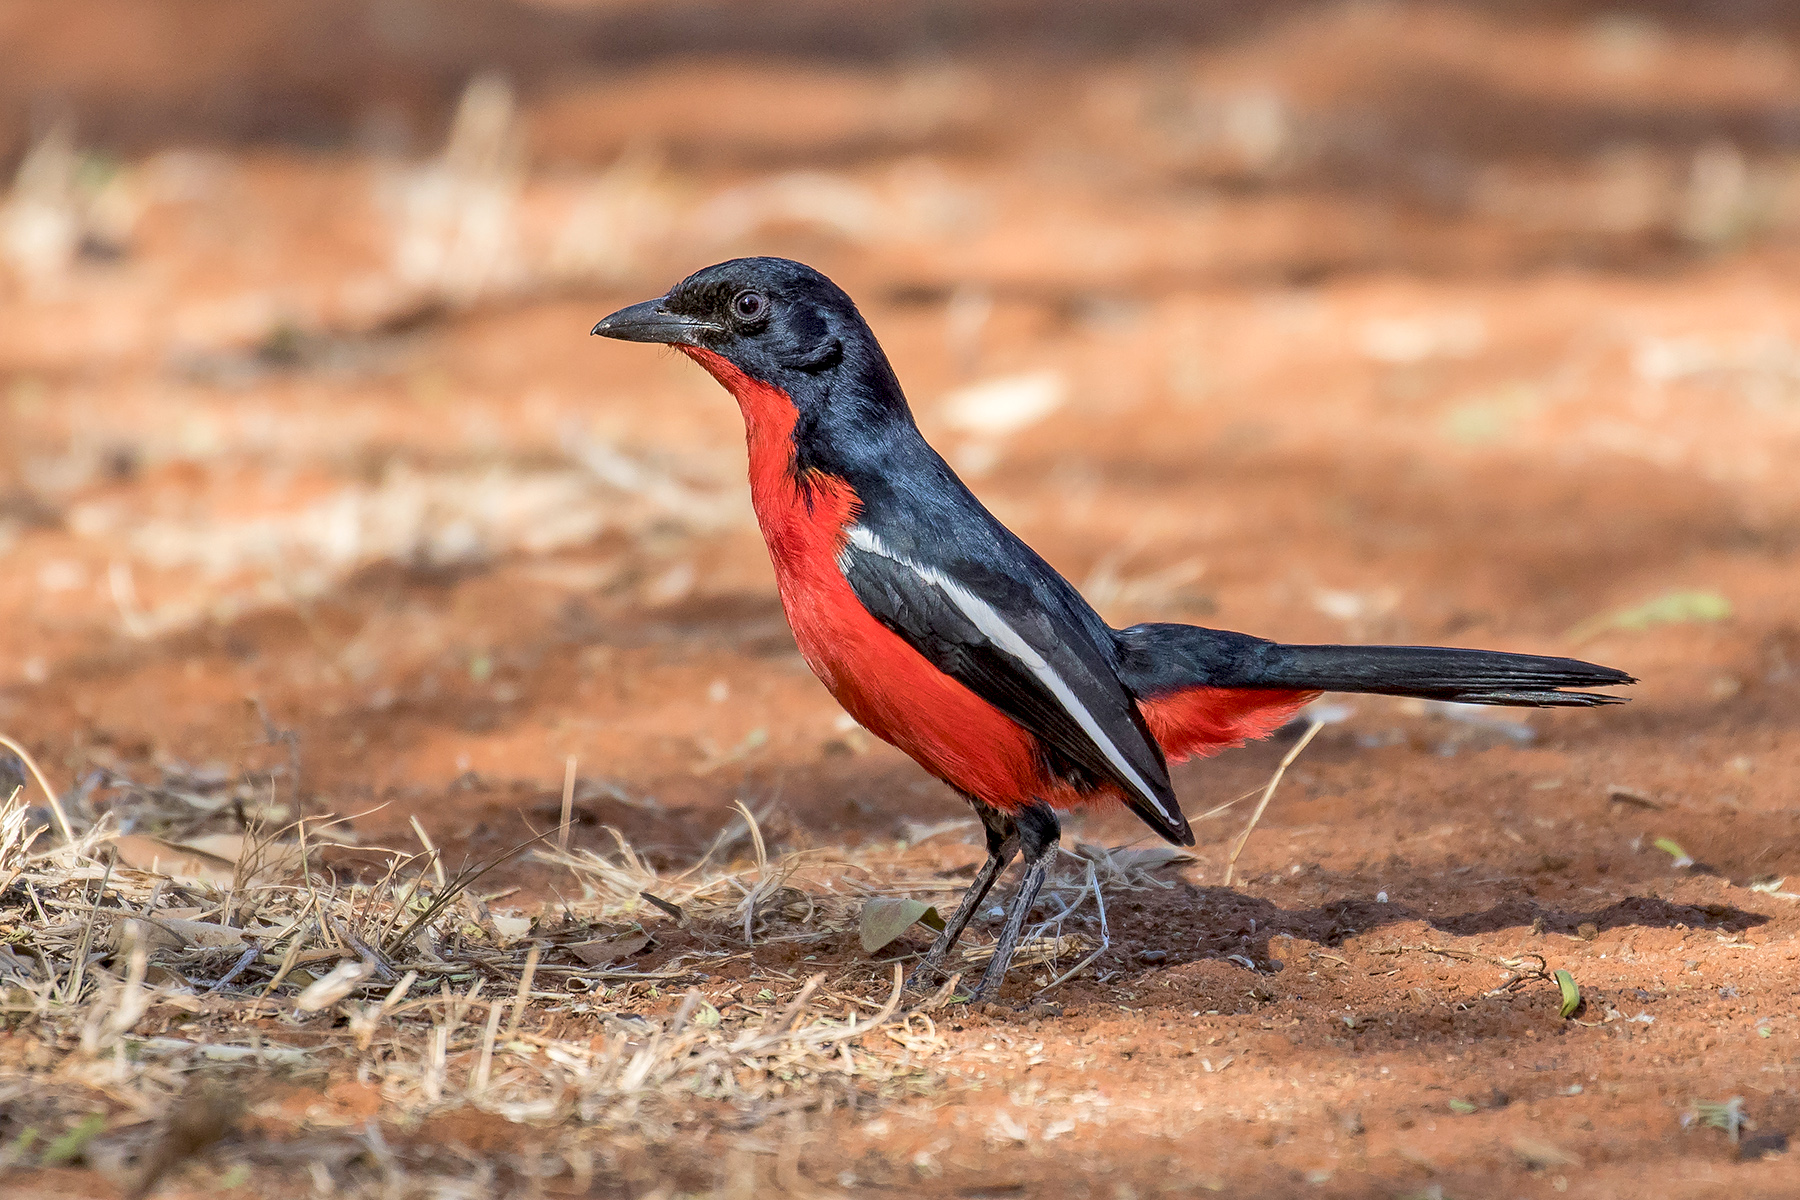 Crimson-breasted Shrike in Namibia (image by Pete Morris)